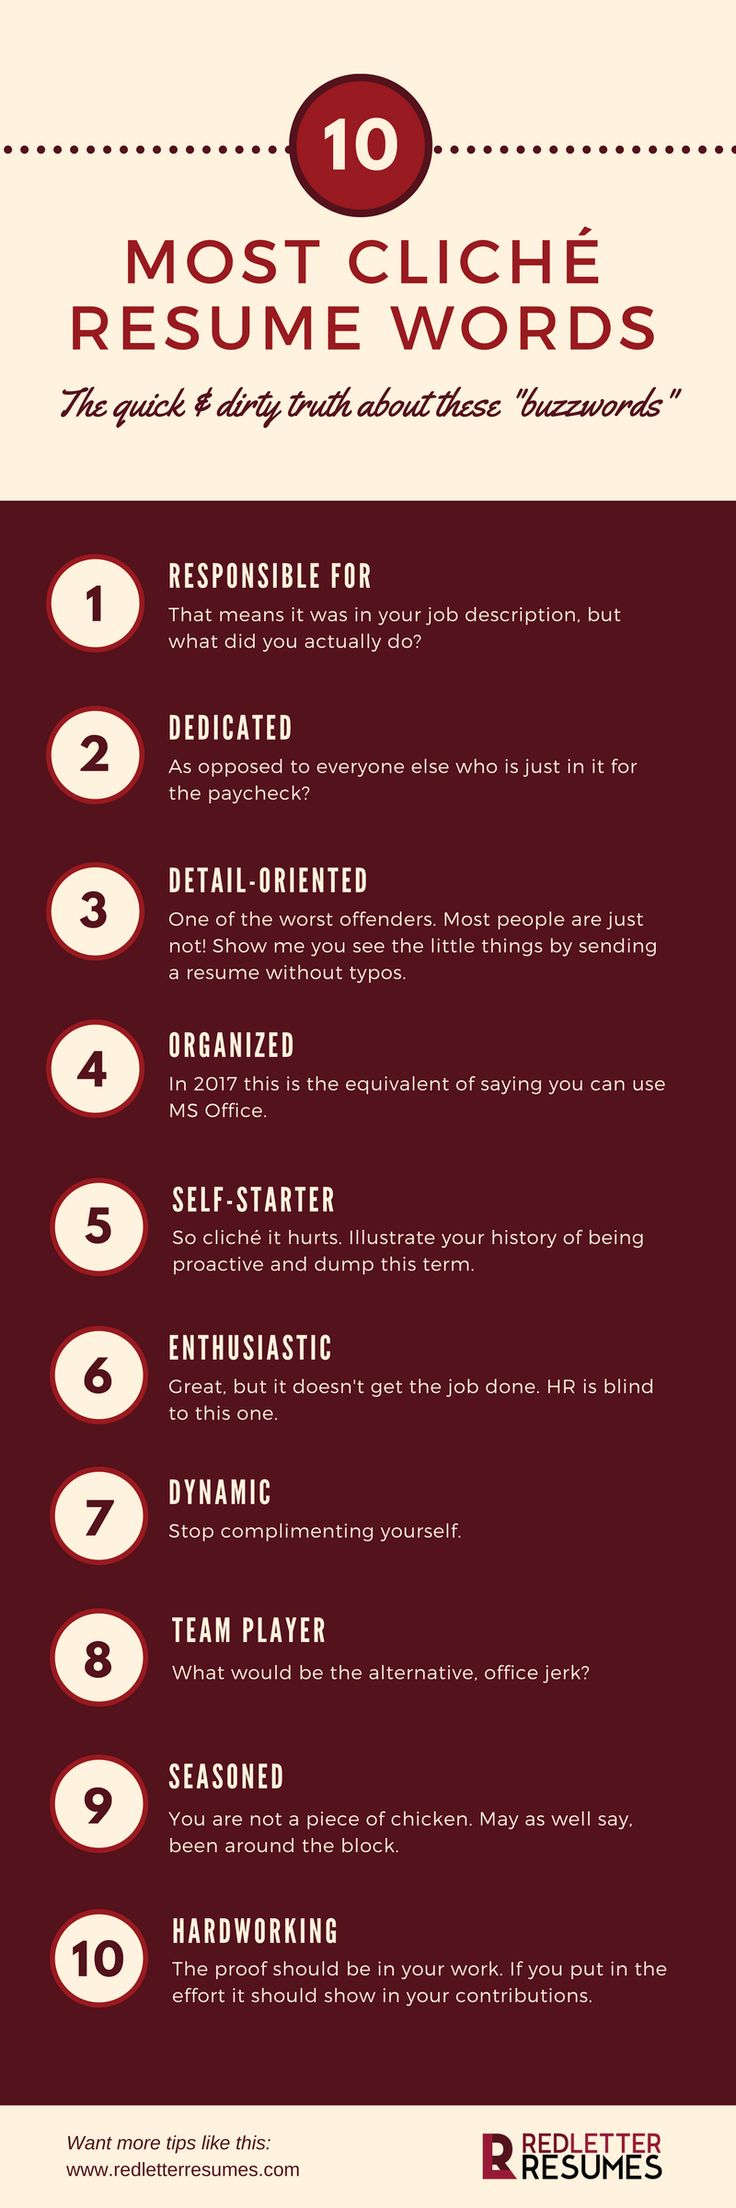 10 Most Cliche Resume Words | @redletterresume // Resume Tips // Resume Design // Resume Skills // Resume Help